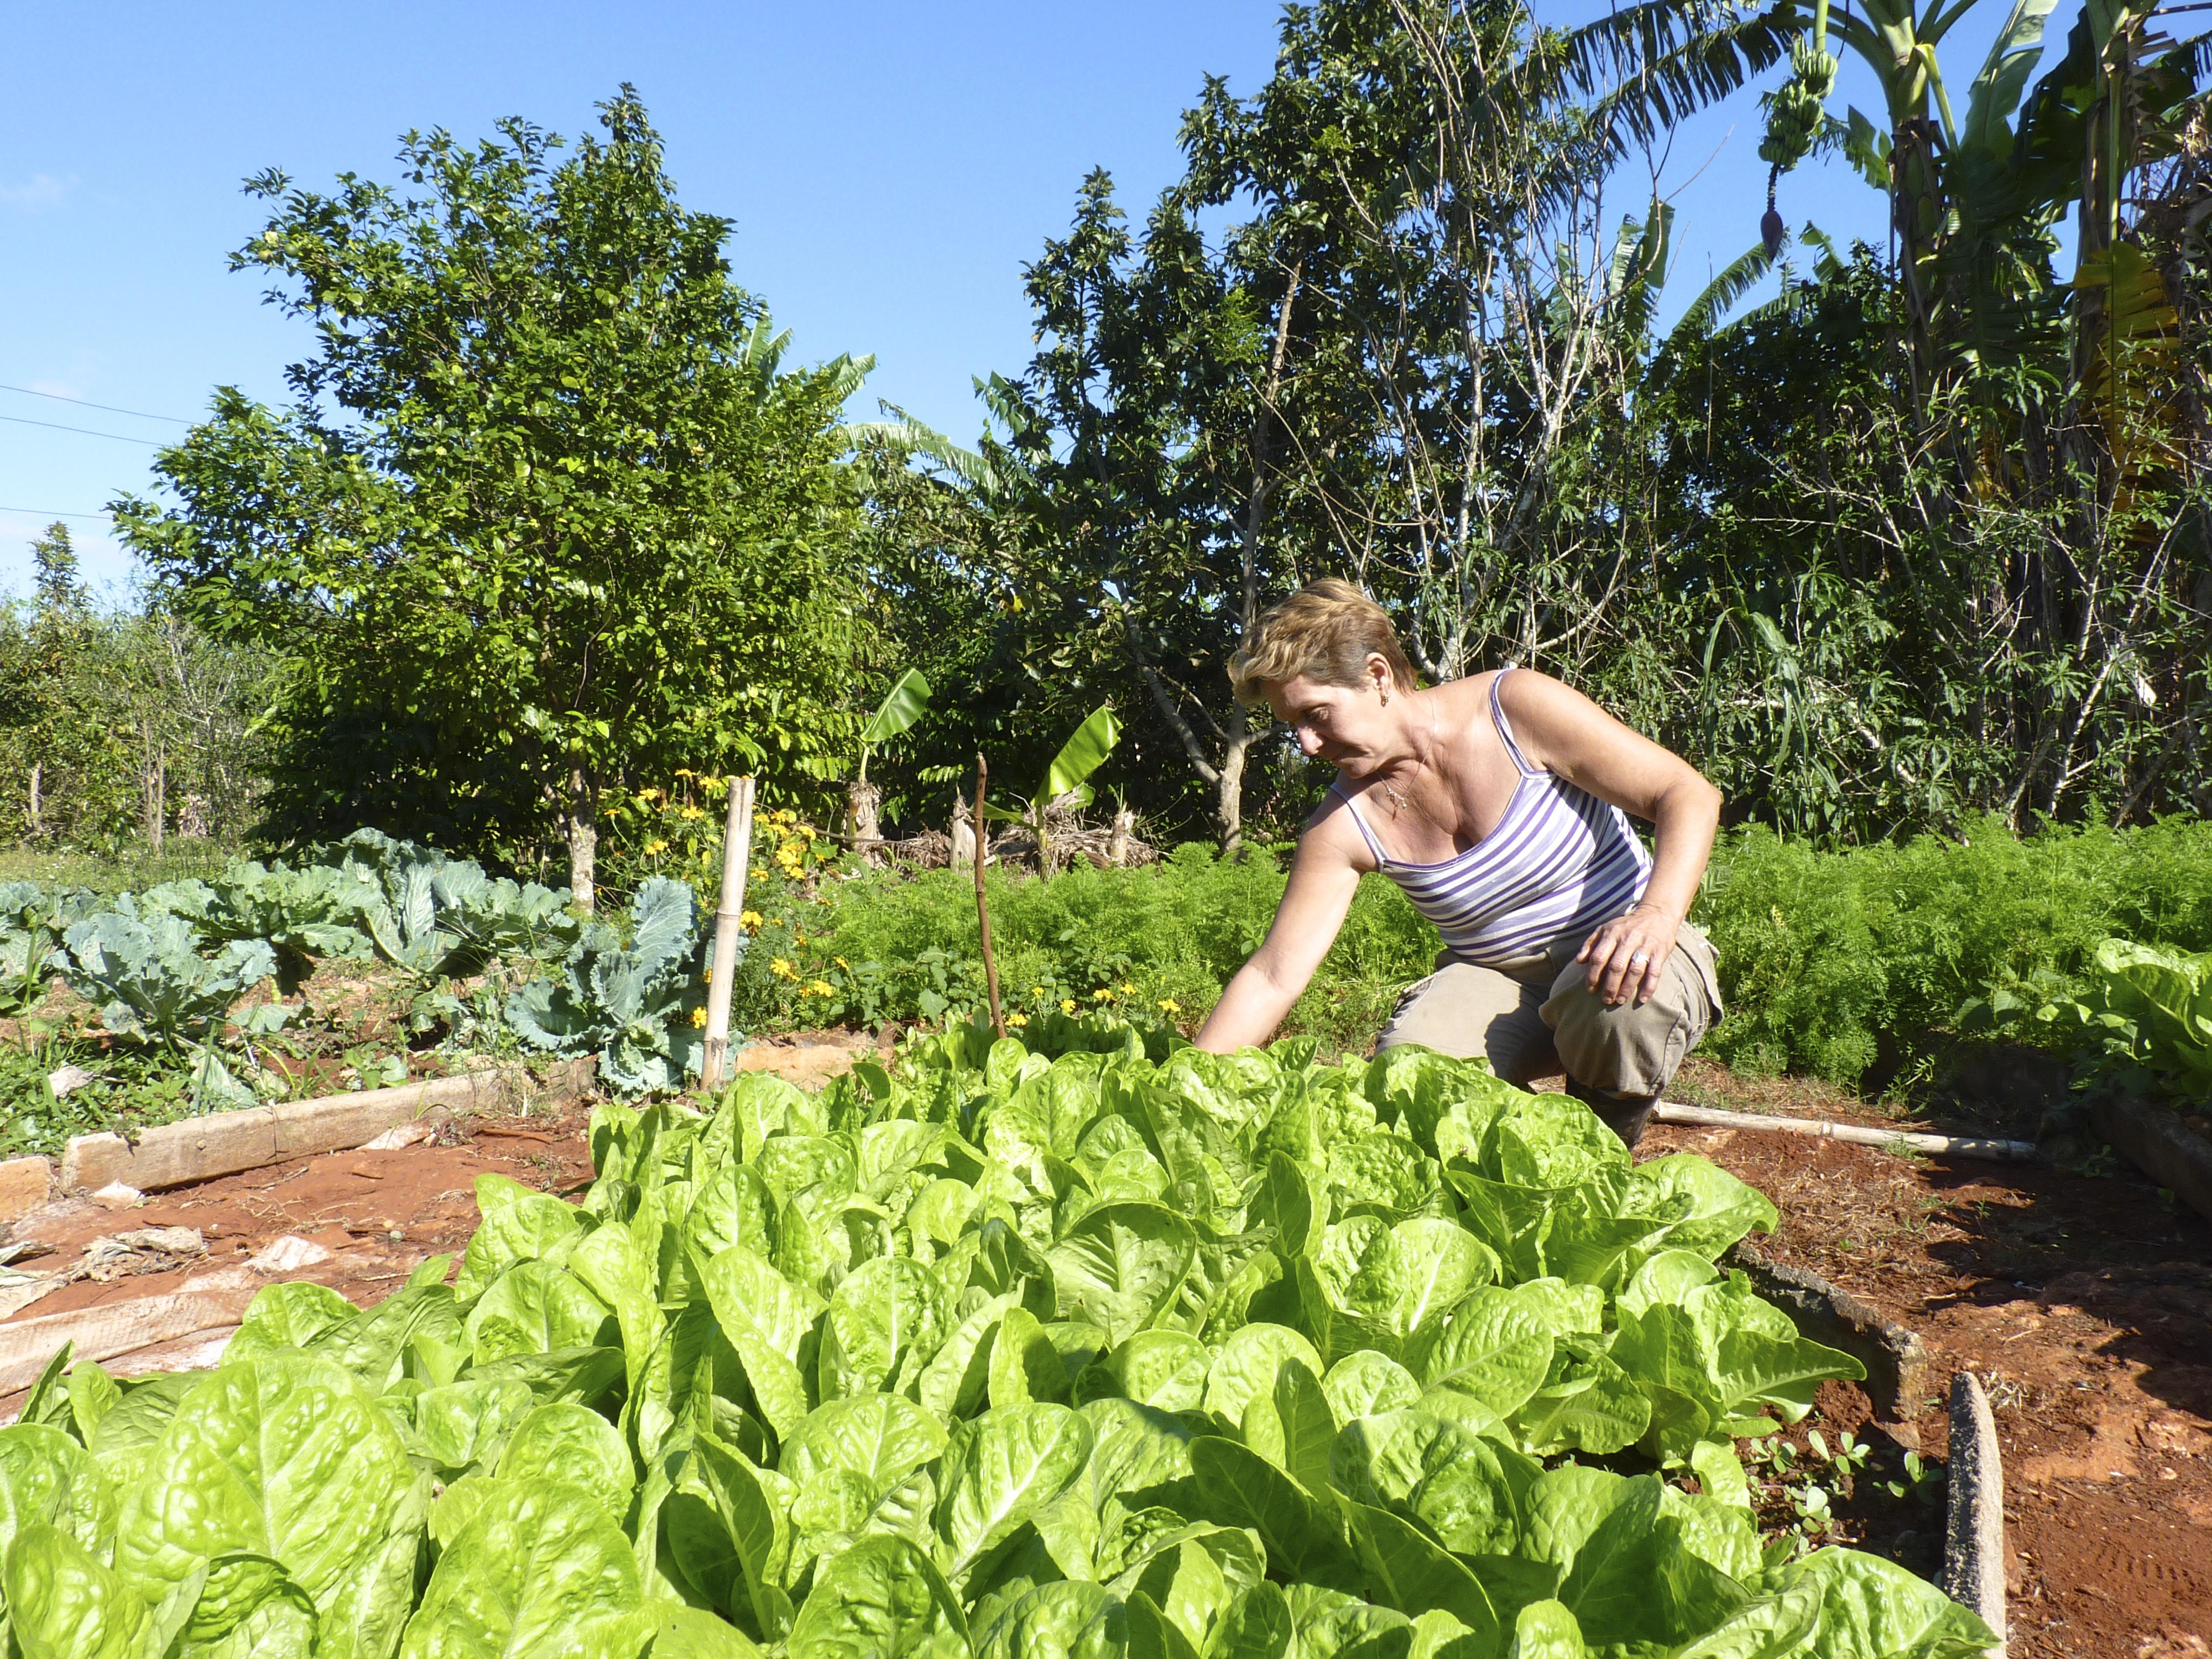 Cuza runs a mixed farm and permaculture demonstrate site with her partner in Matanzas, Cuba. Cuza grows vegetables, raises rabbits and goats, and tends an acre of mixed food forest for fruit and timber production.  Photo Credit - Trina Moyles